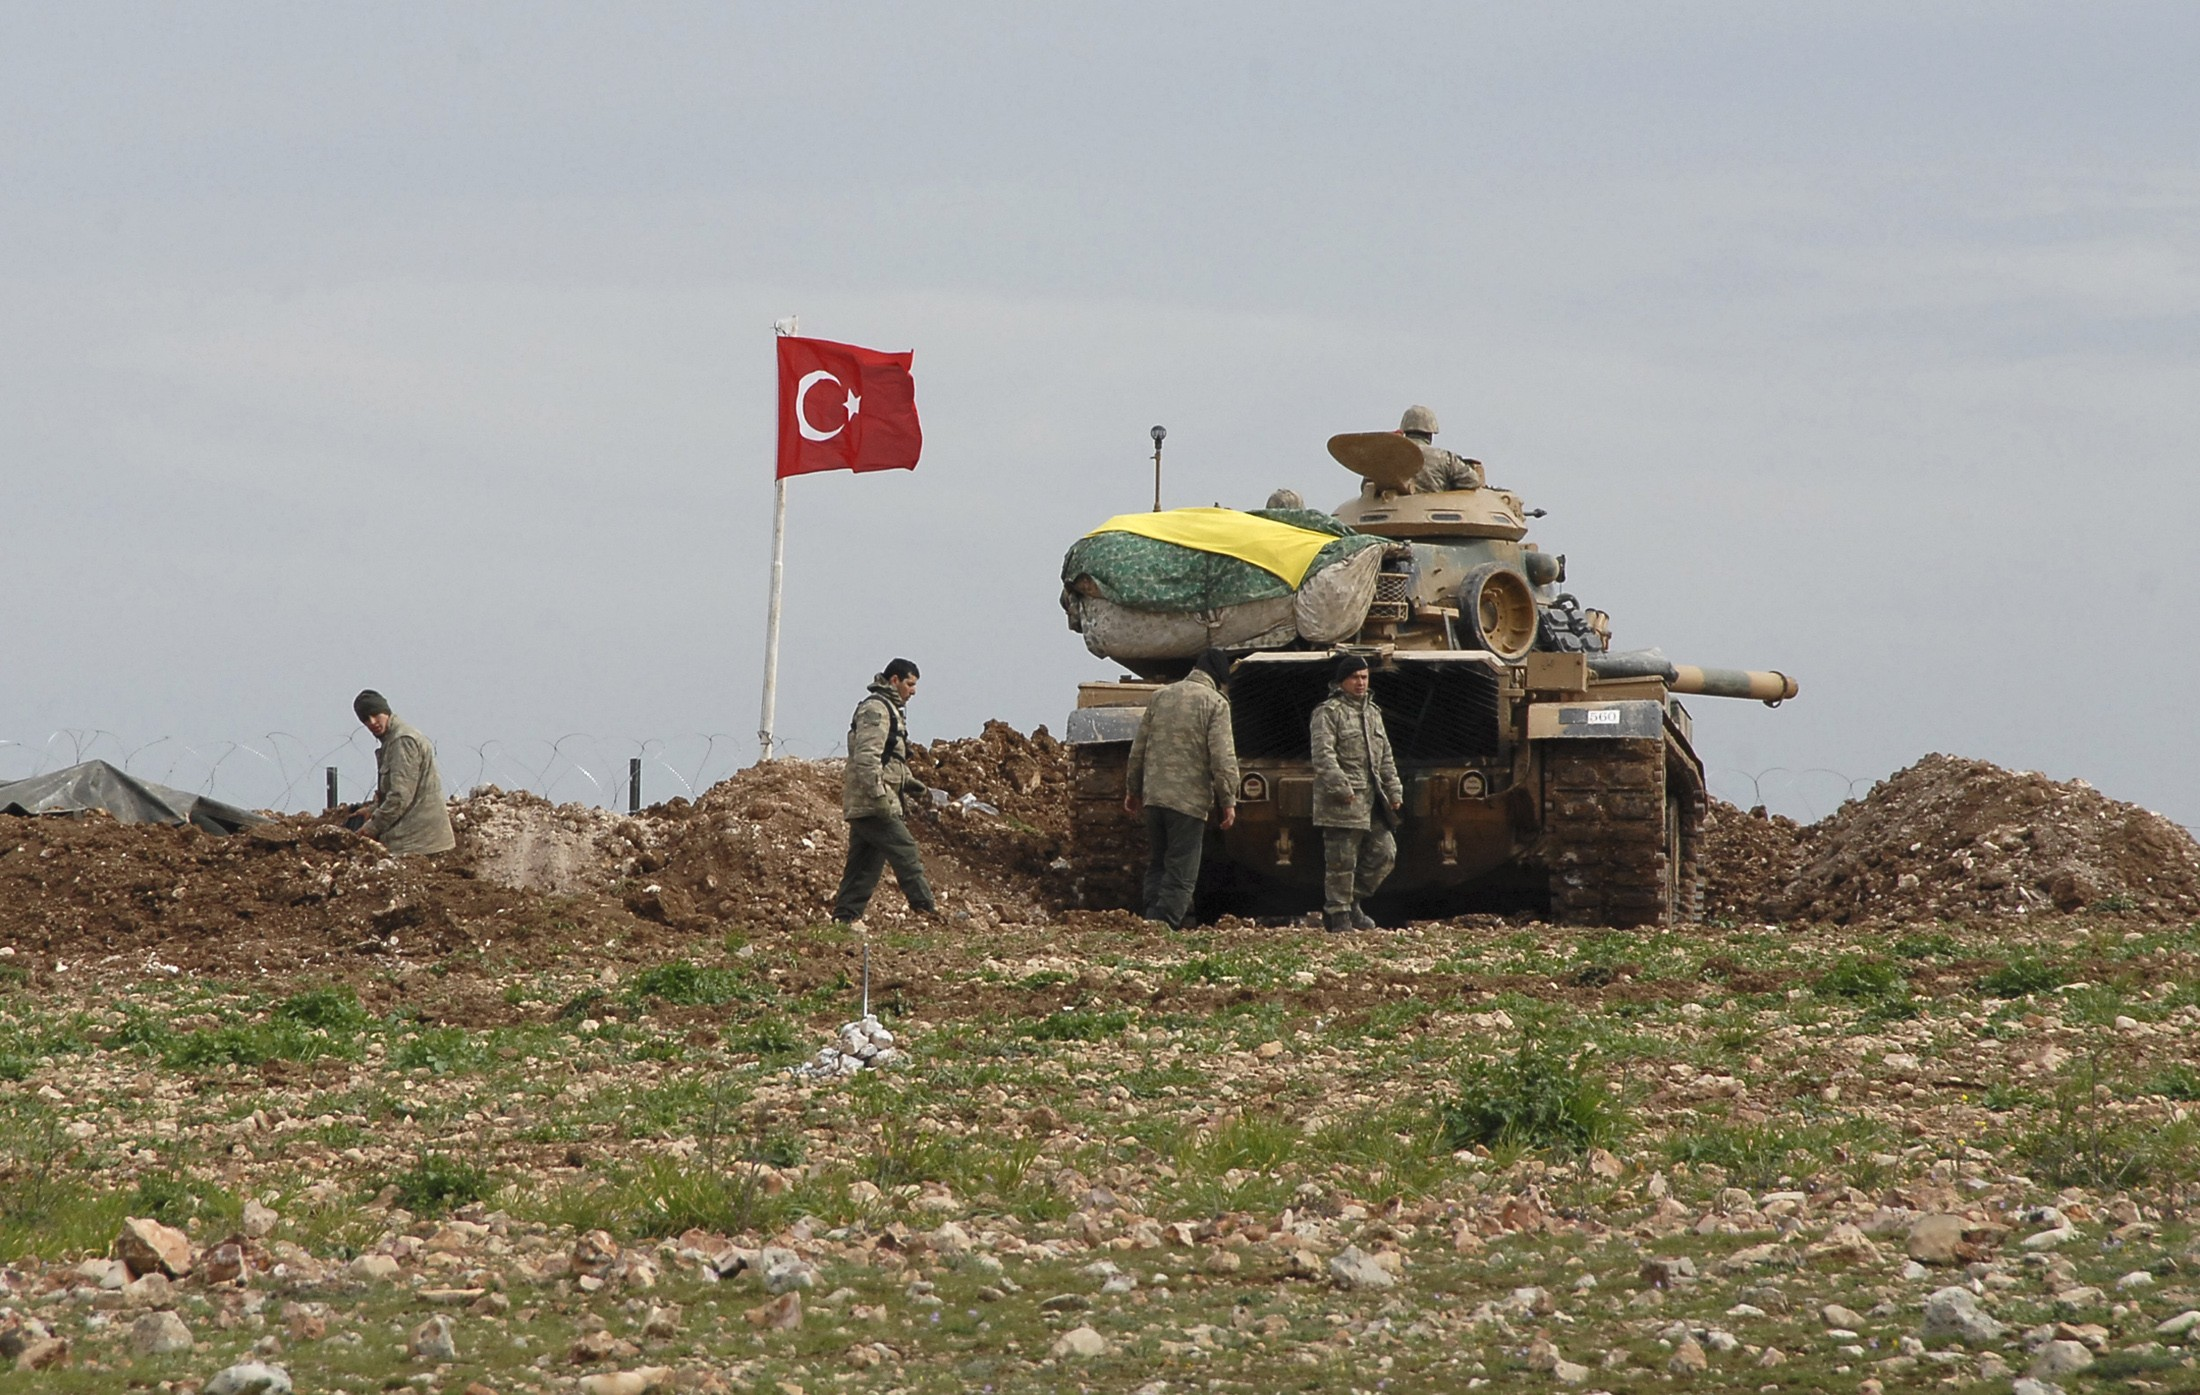 Turkish soldiers and an army tank take position at the new site of the Suleyman Shah tomb near the northwern Syrian village of Esme, on the Syrian-Turkish border February 24, 2015. Photo credit: Reuters.